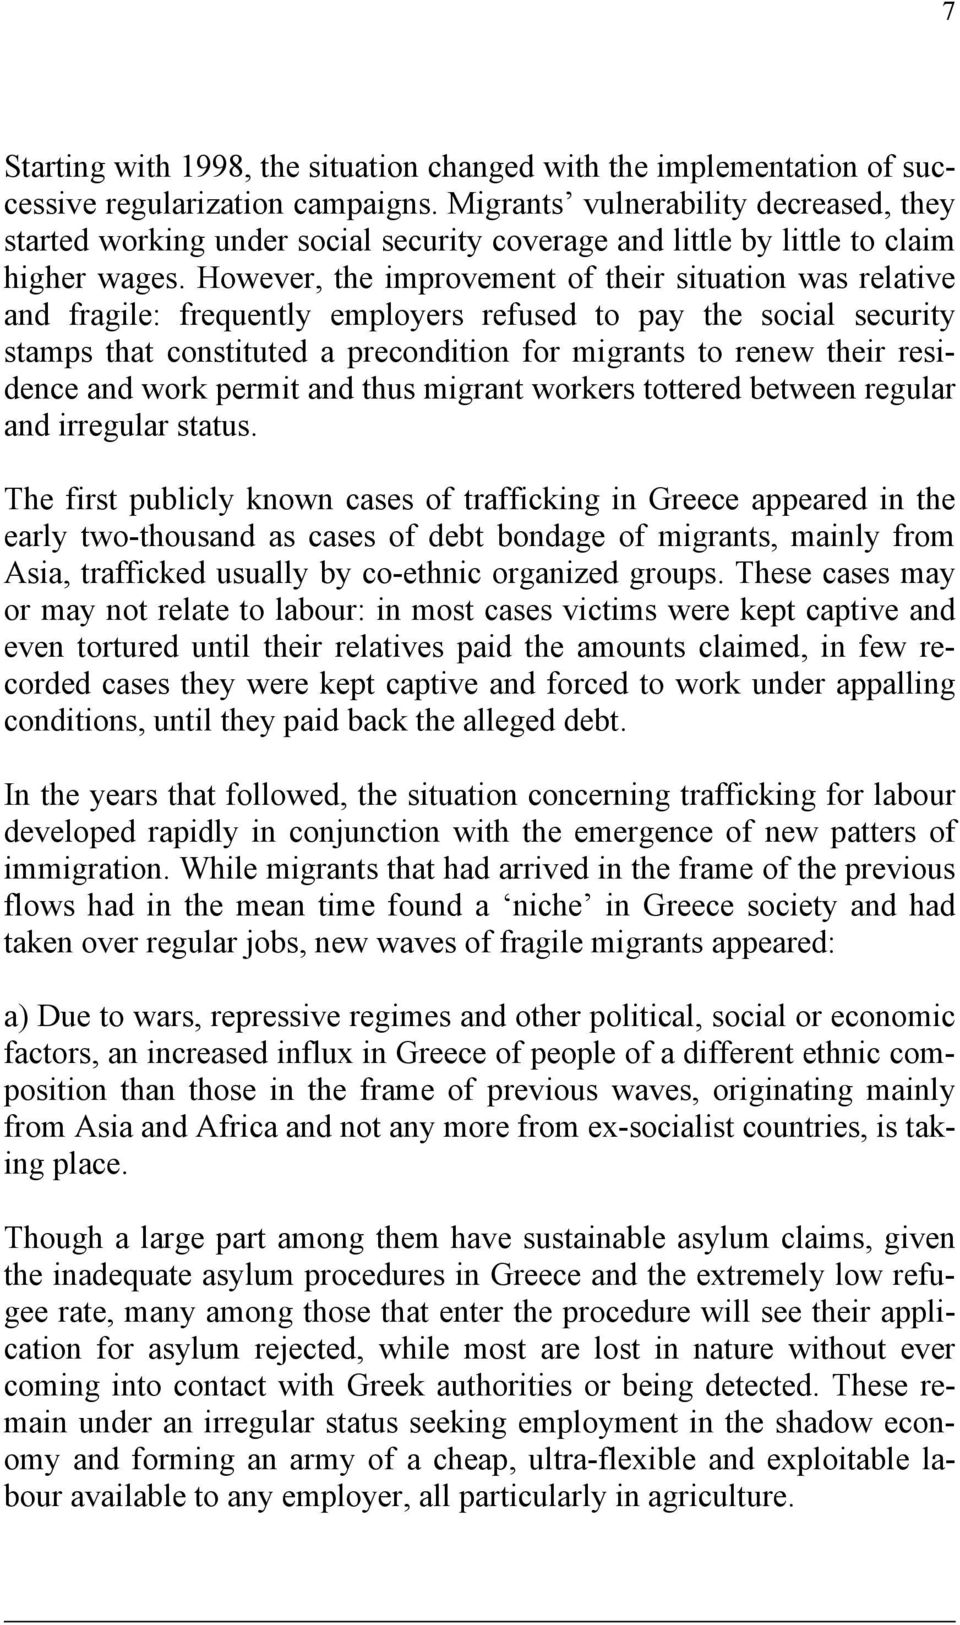 However, the improvement of their situation was relative and fragile: frequently employers refused to pay the social security stamps that constituted a precondition for migrants to renew their